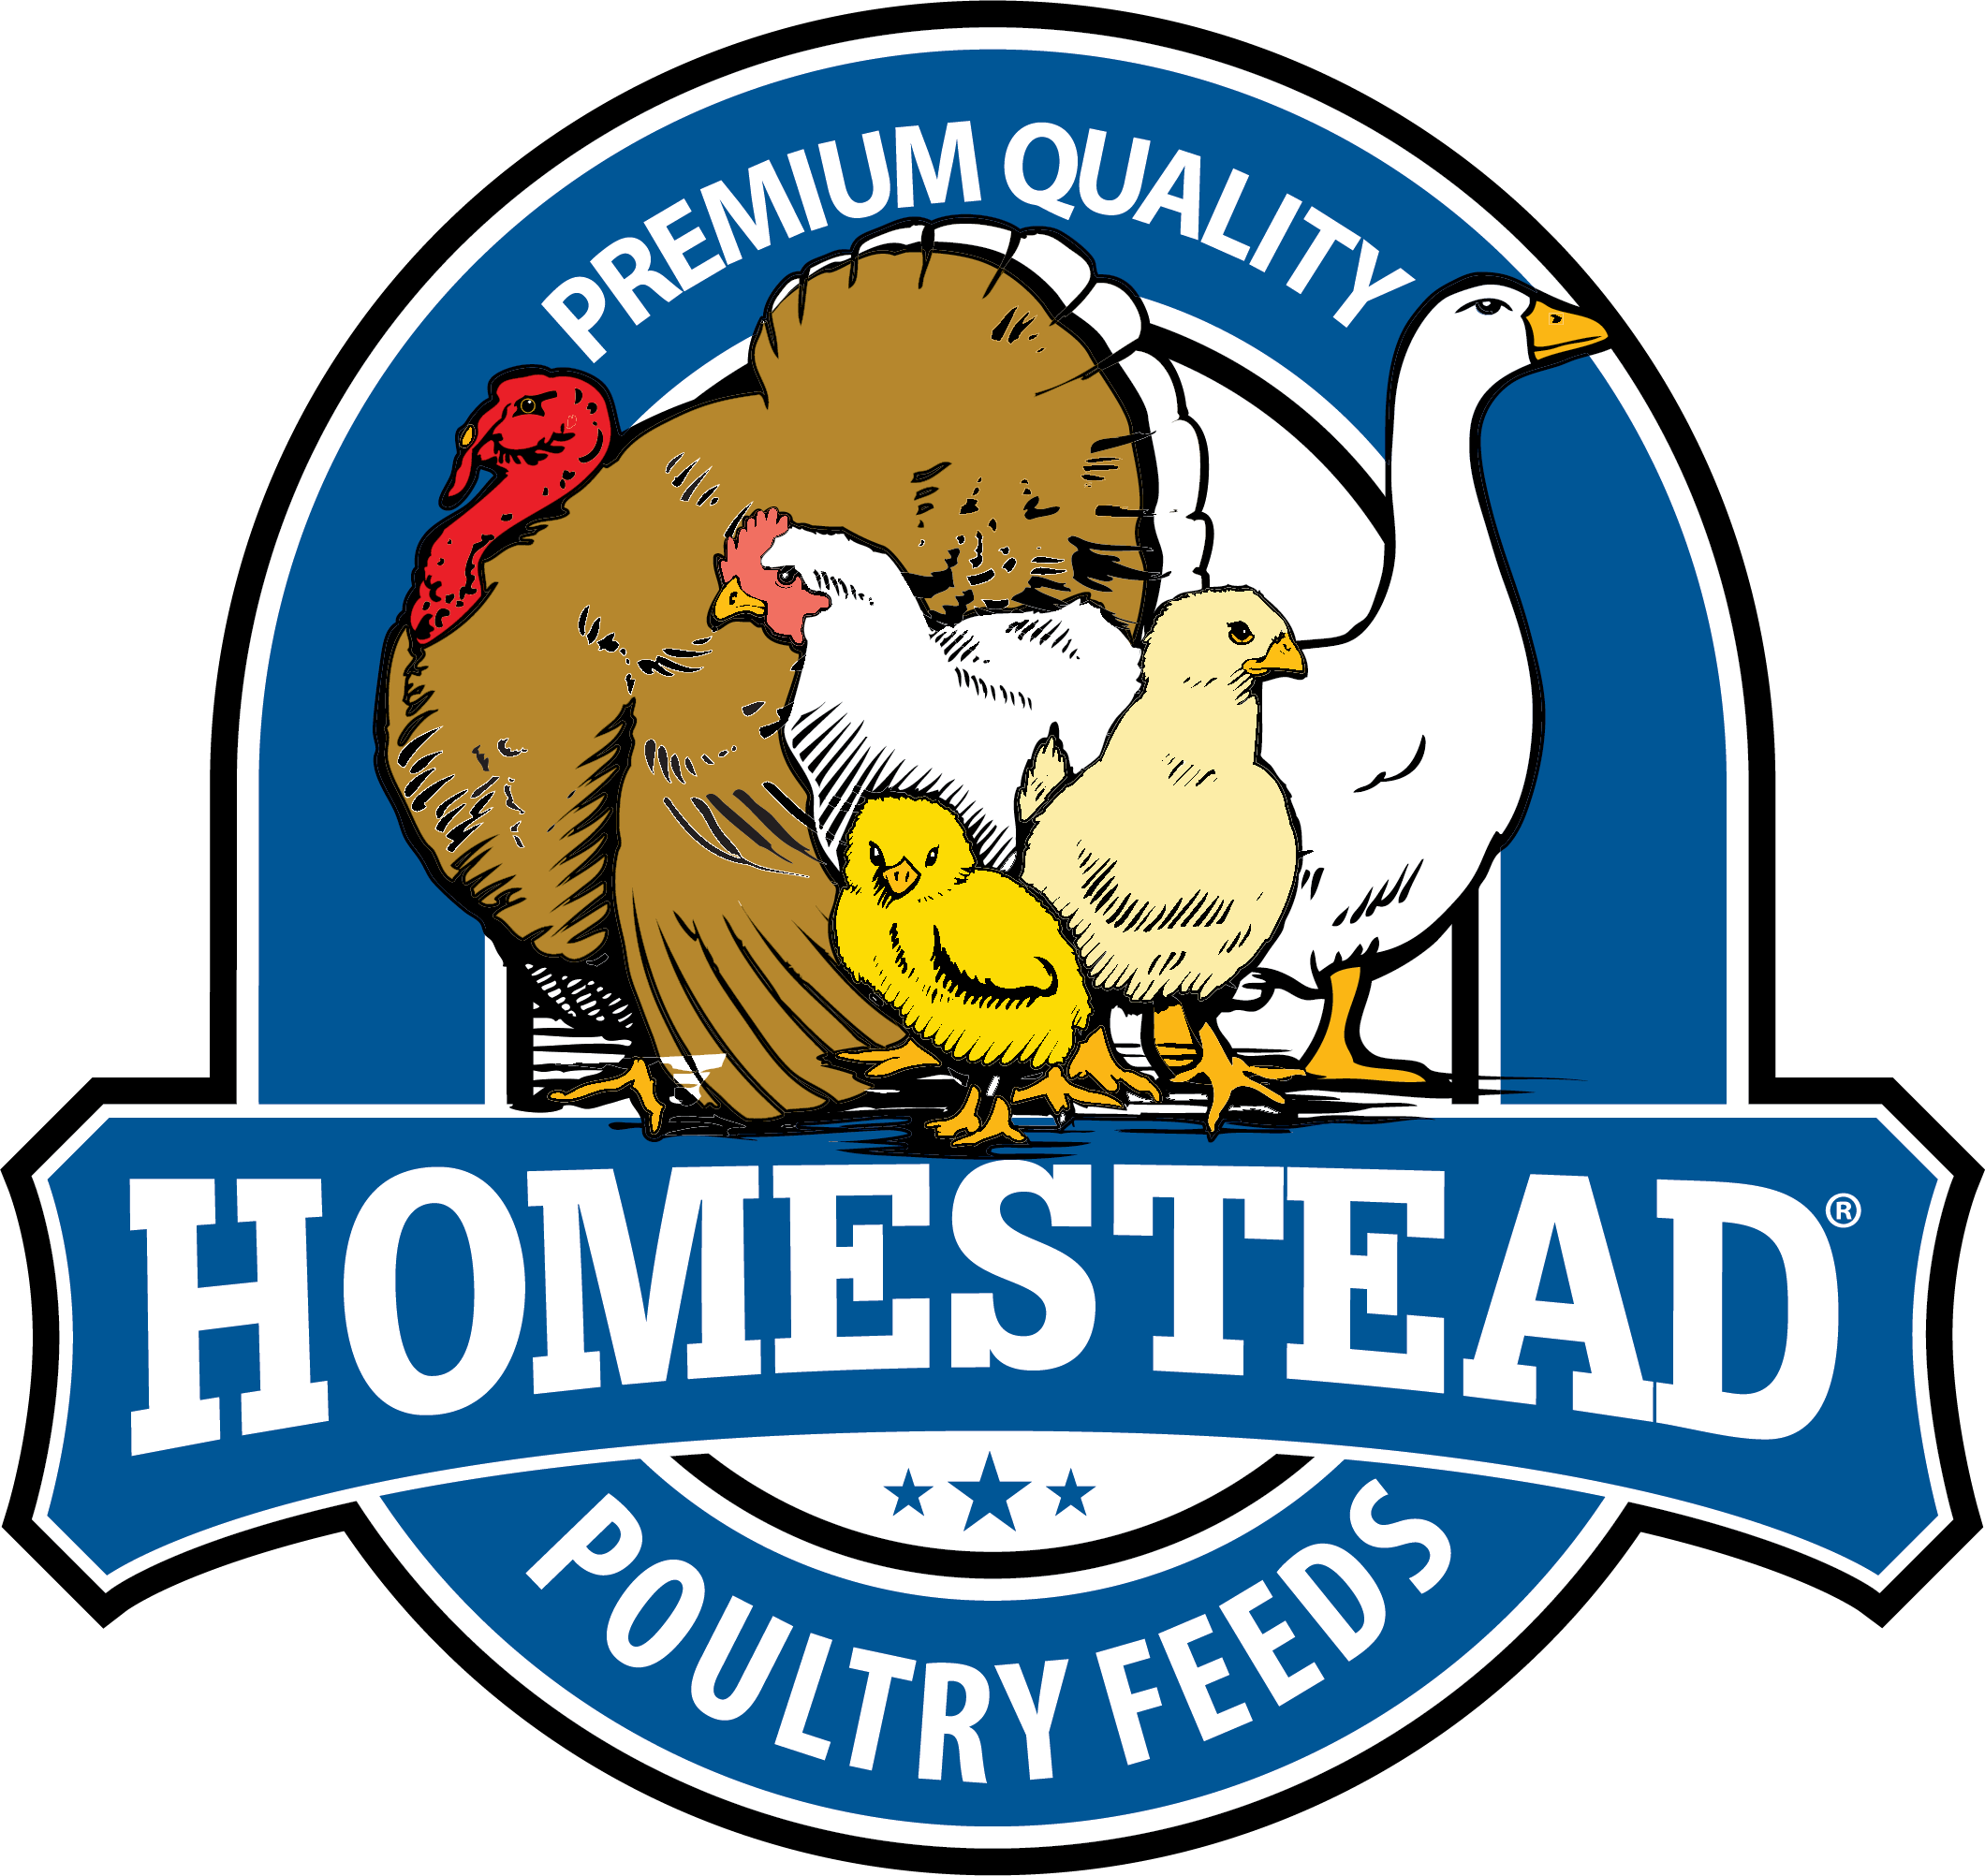 Homestead Premium Quality Poultry Feeds